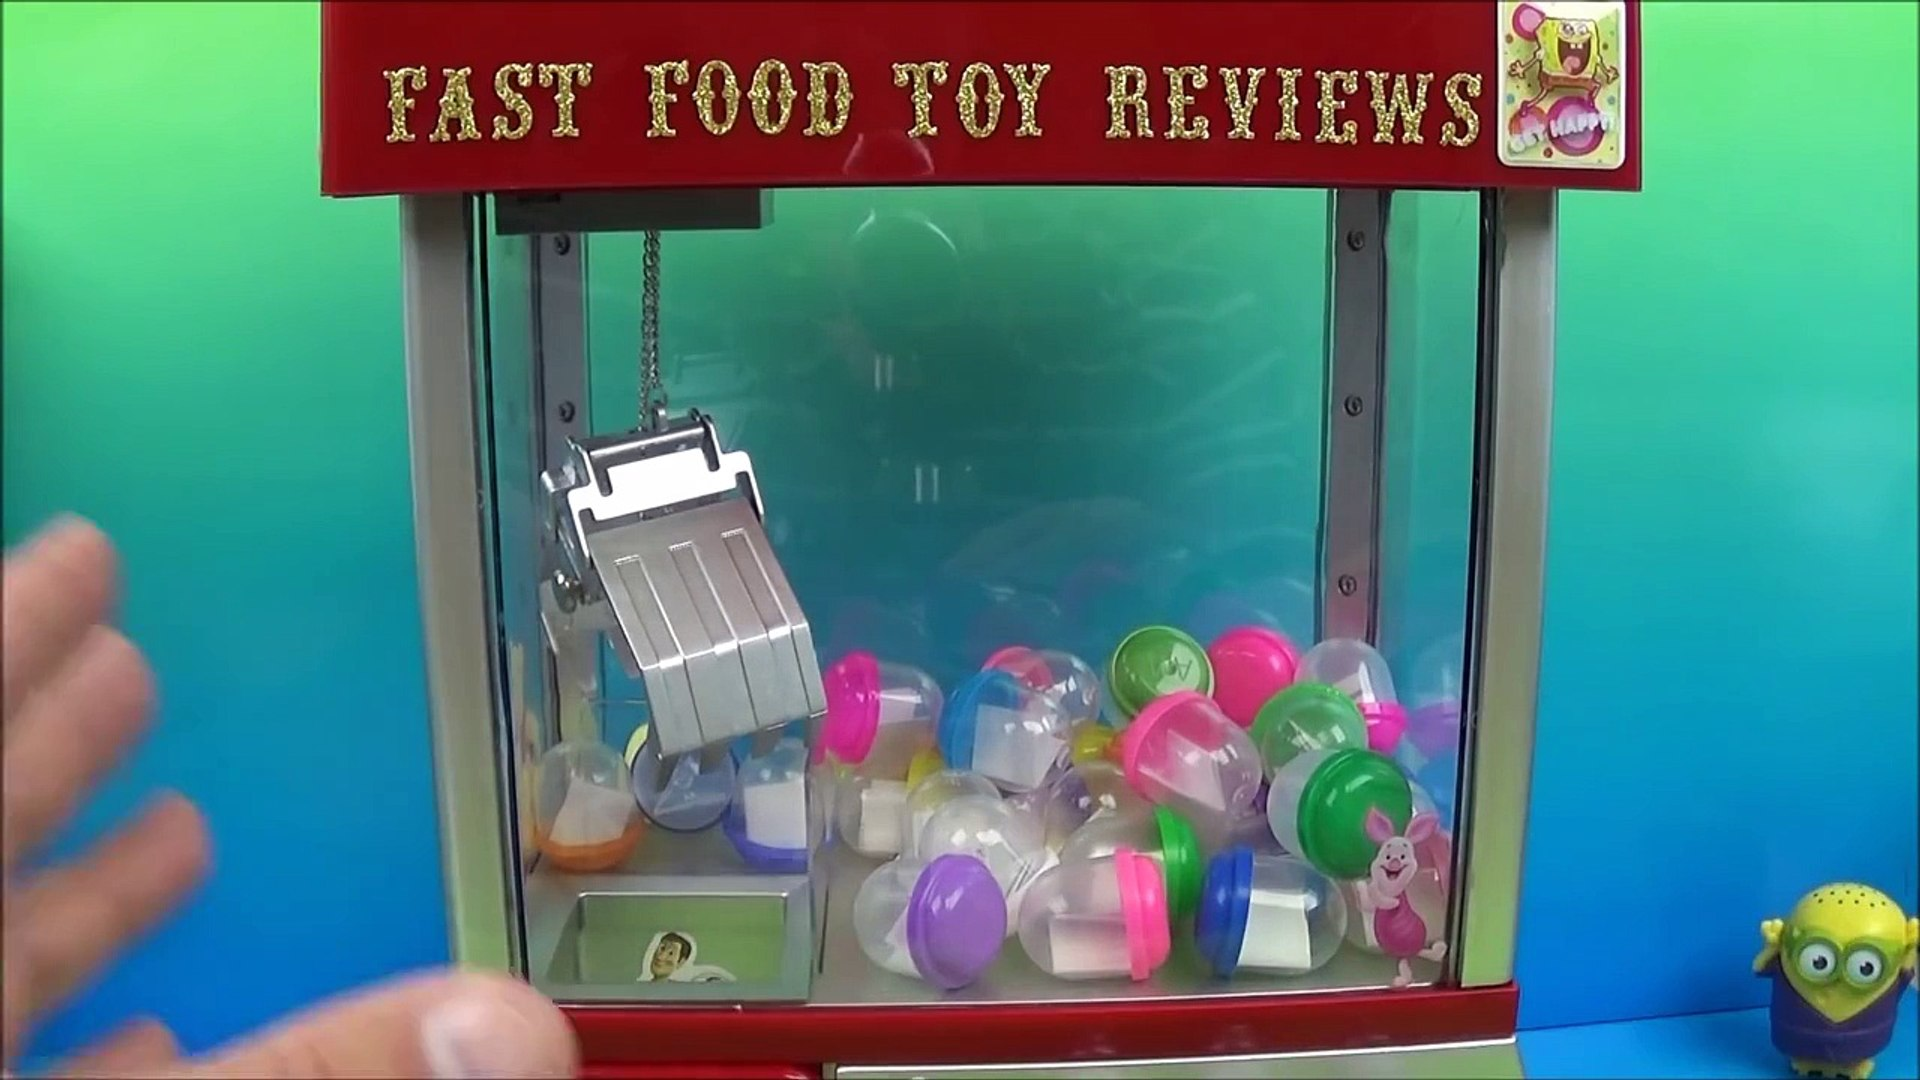 The Mystery Claw Machine By Fastfoodtoyreviews Dailymotion Video